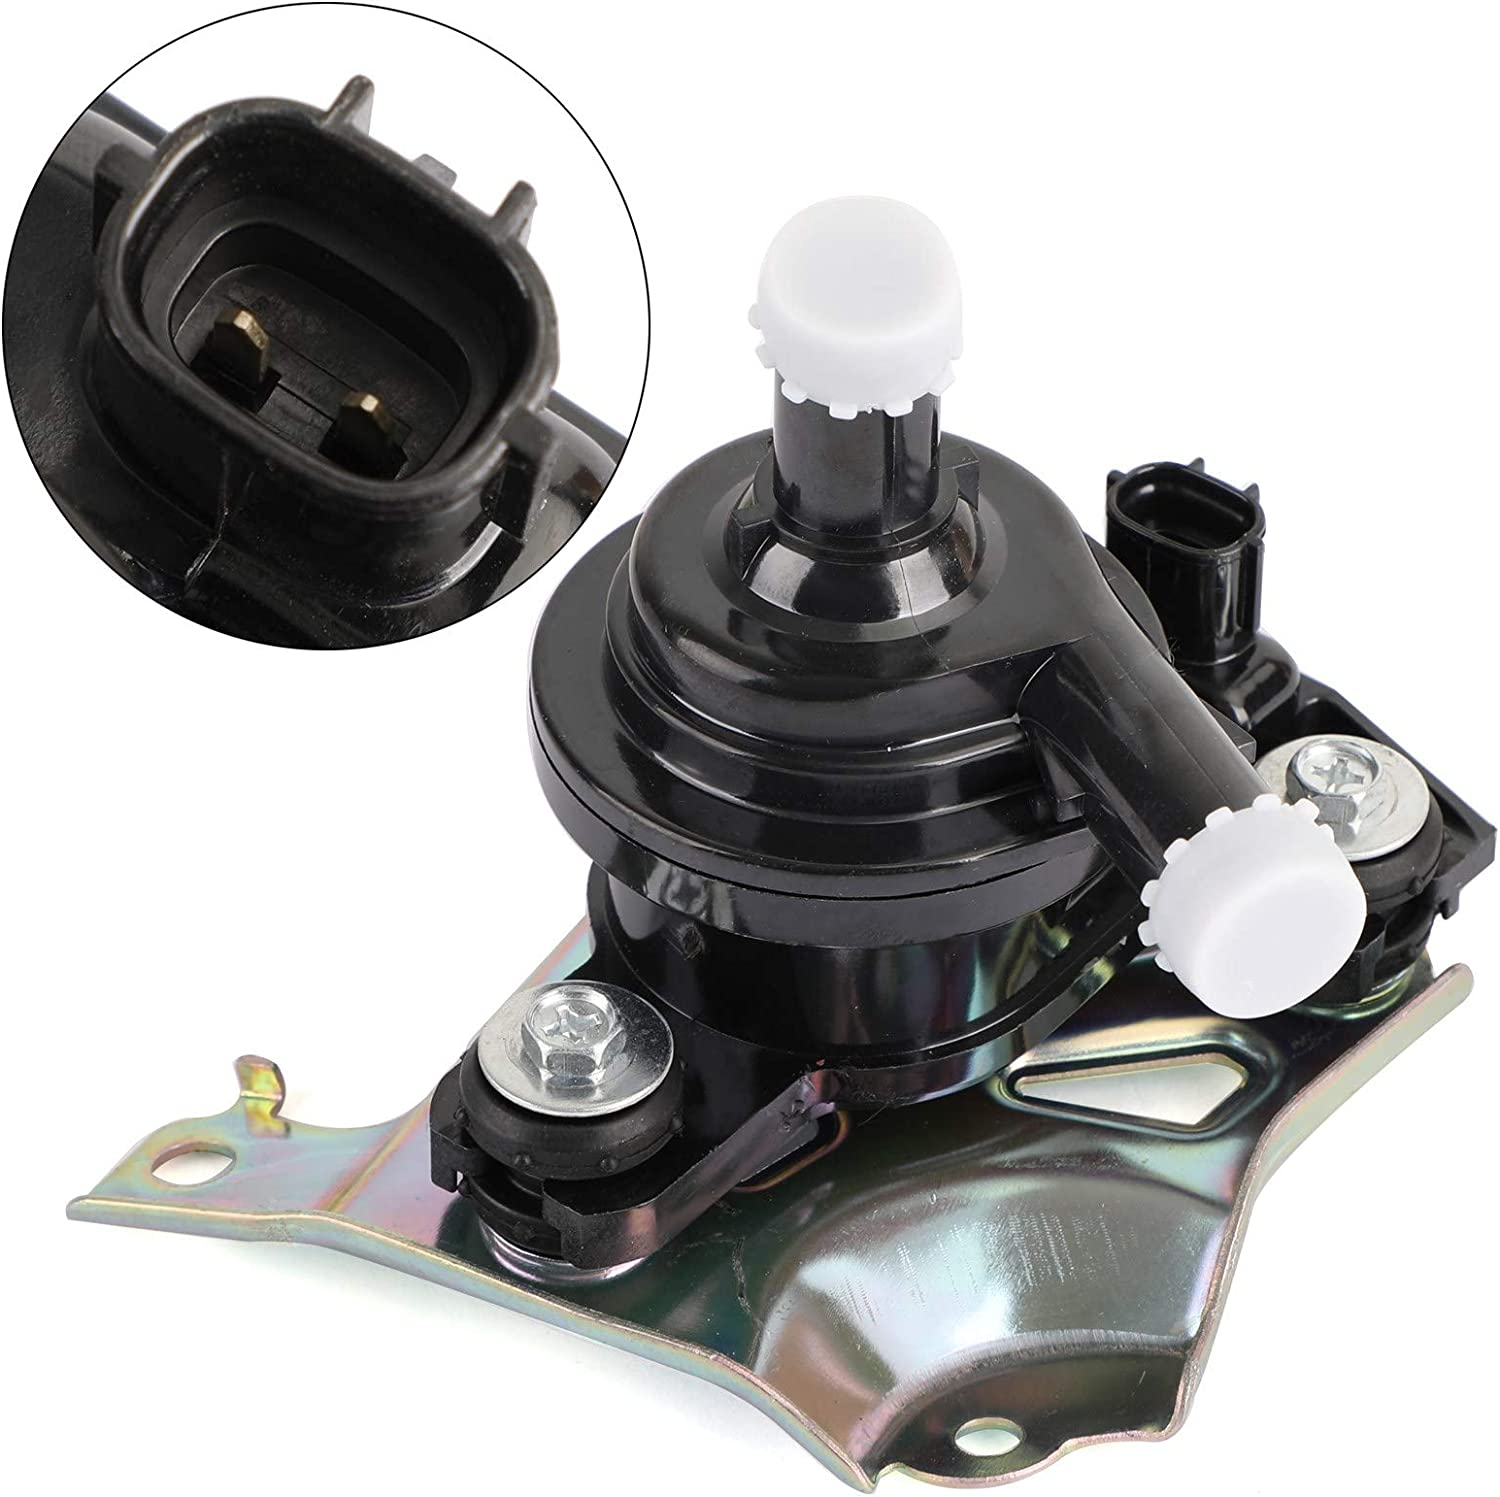 Bruce Shark Water Pump Engine 04000- Weekly update Inverter Electric price Coolant